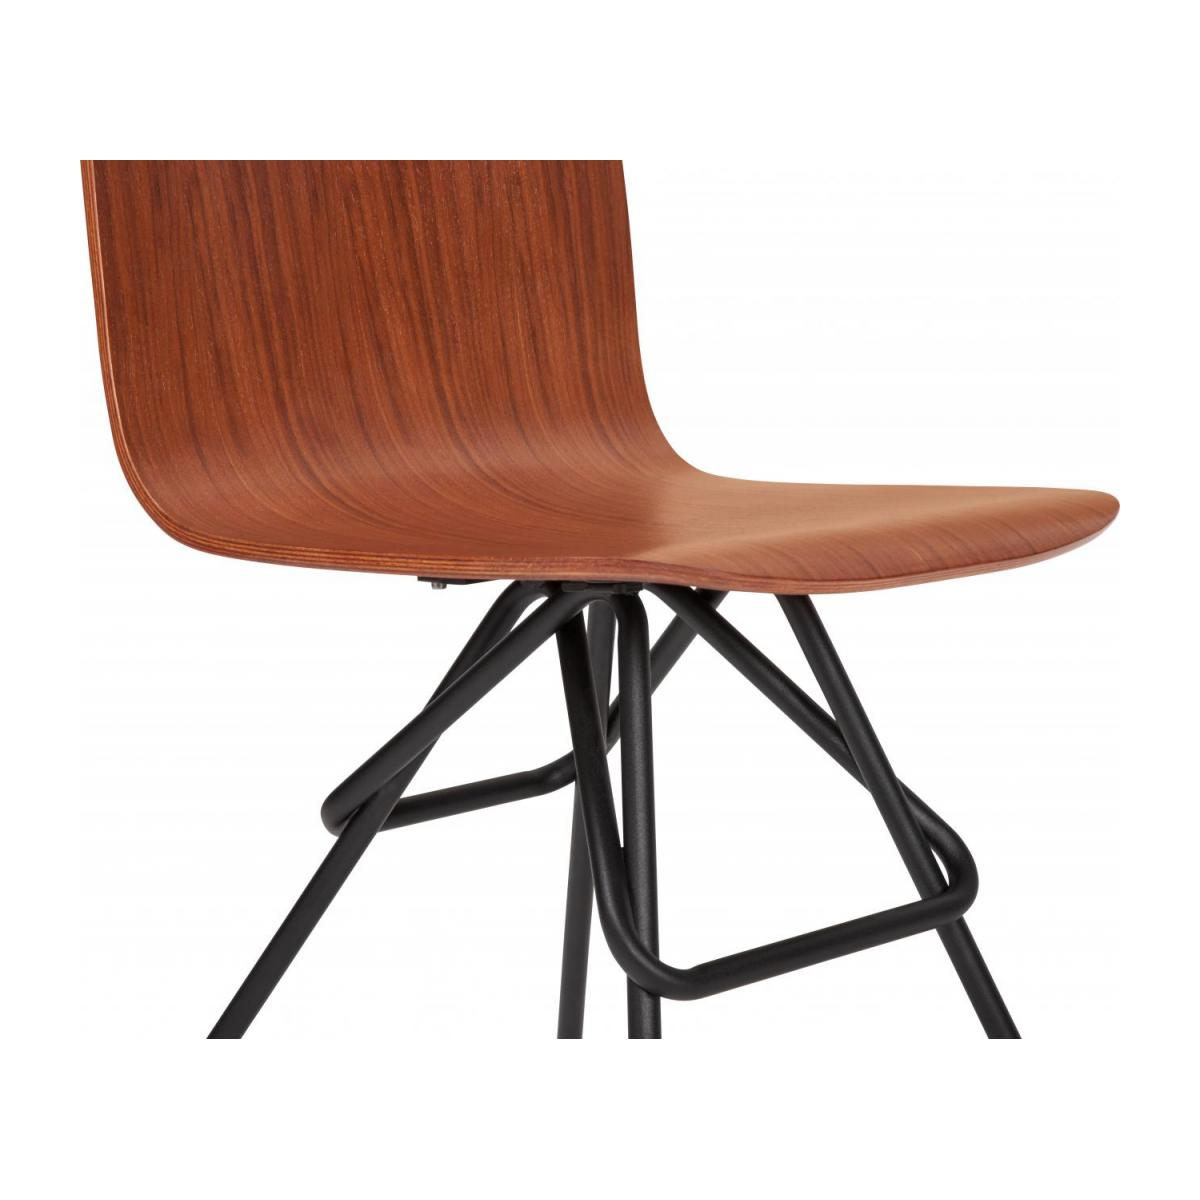 Walnut chair and black steel legs n°6